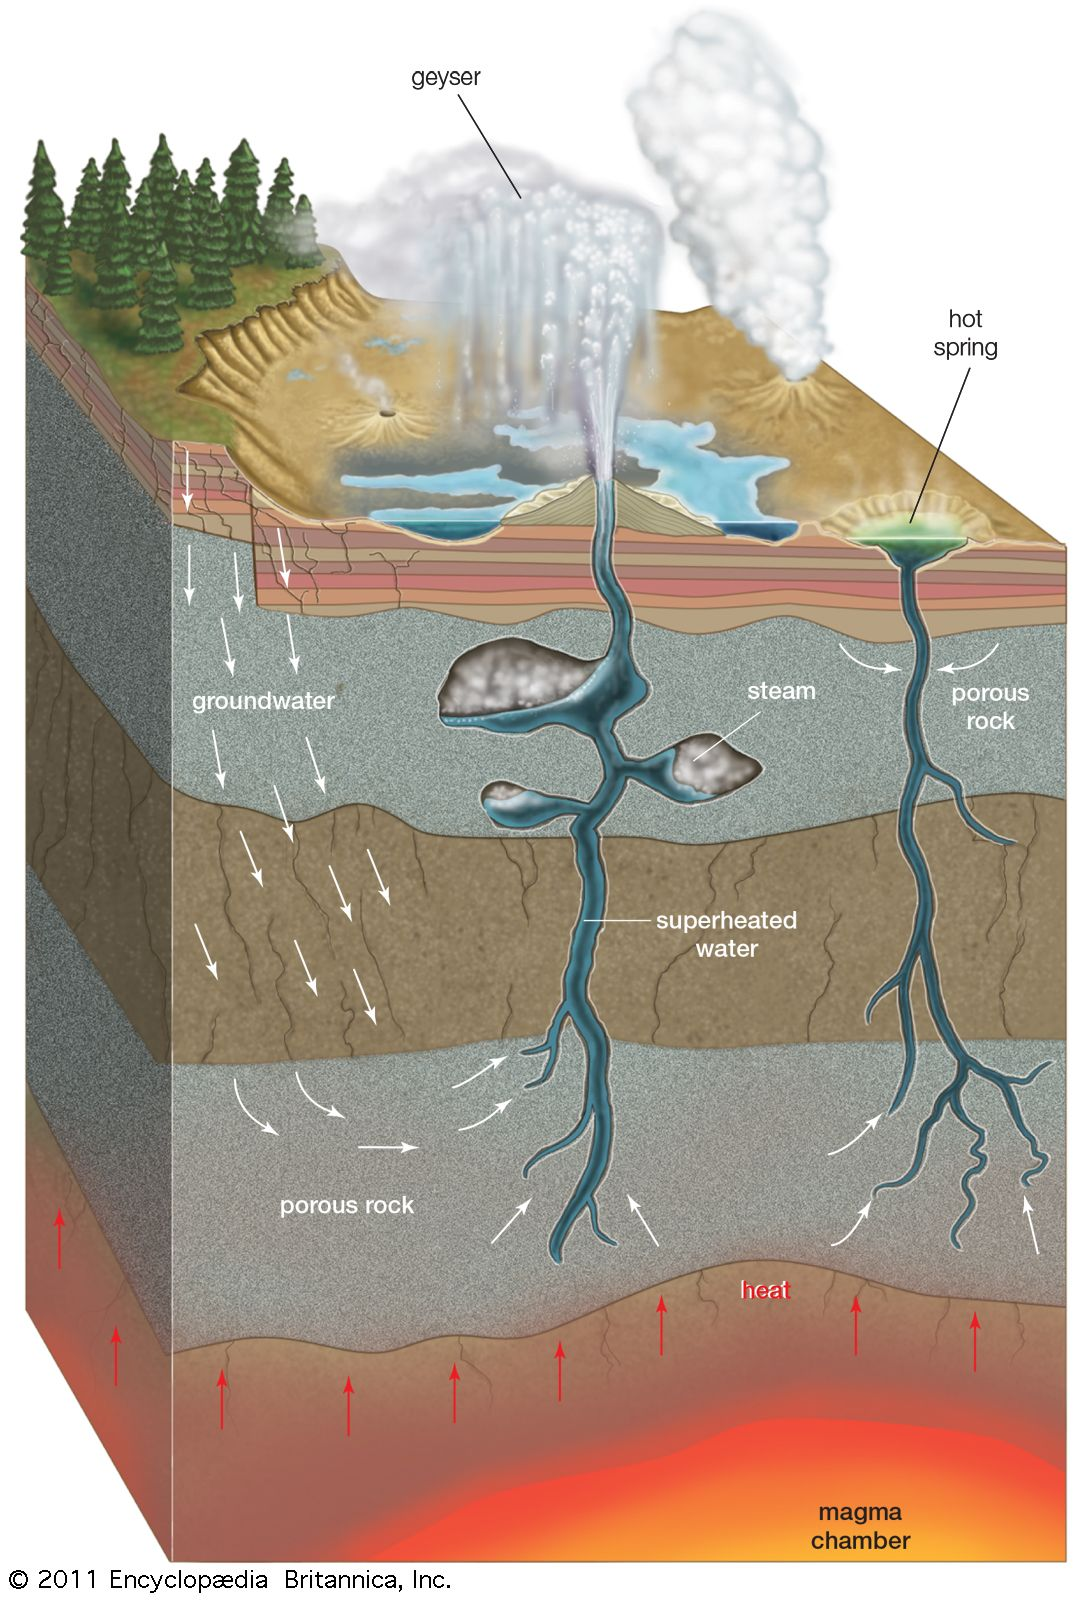 Cross Section Of A Geyser And Hot Springgroundwater